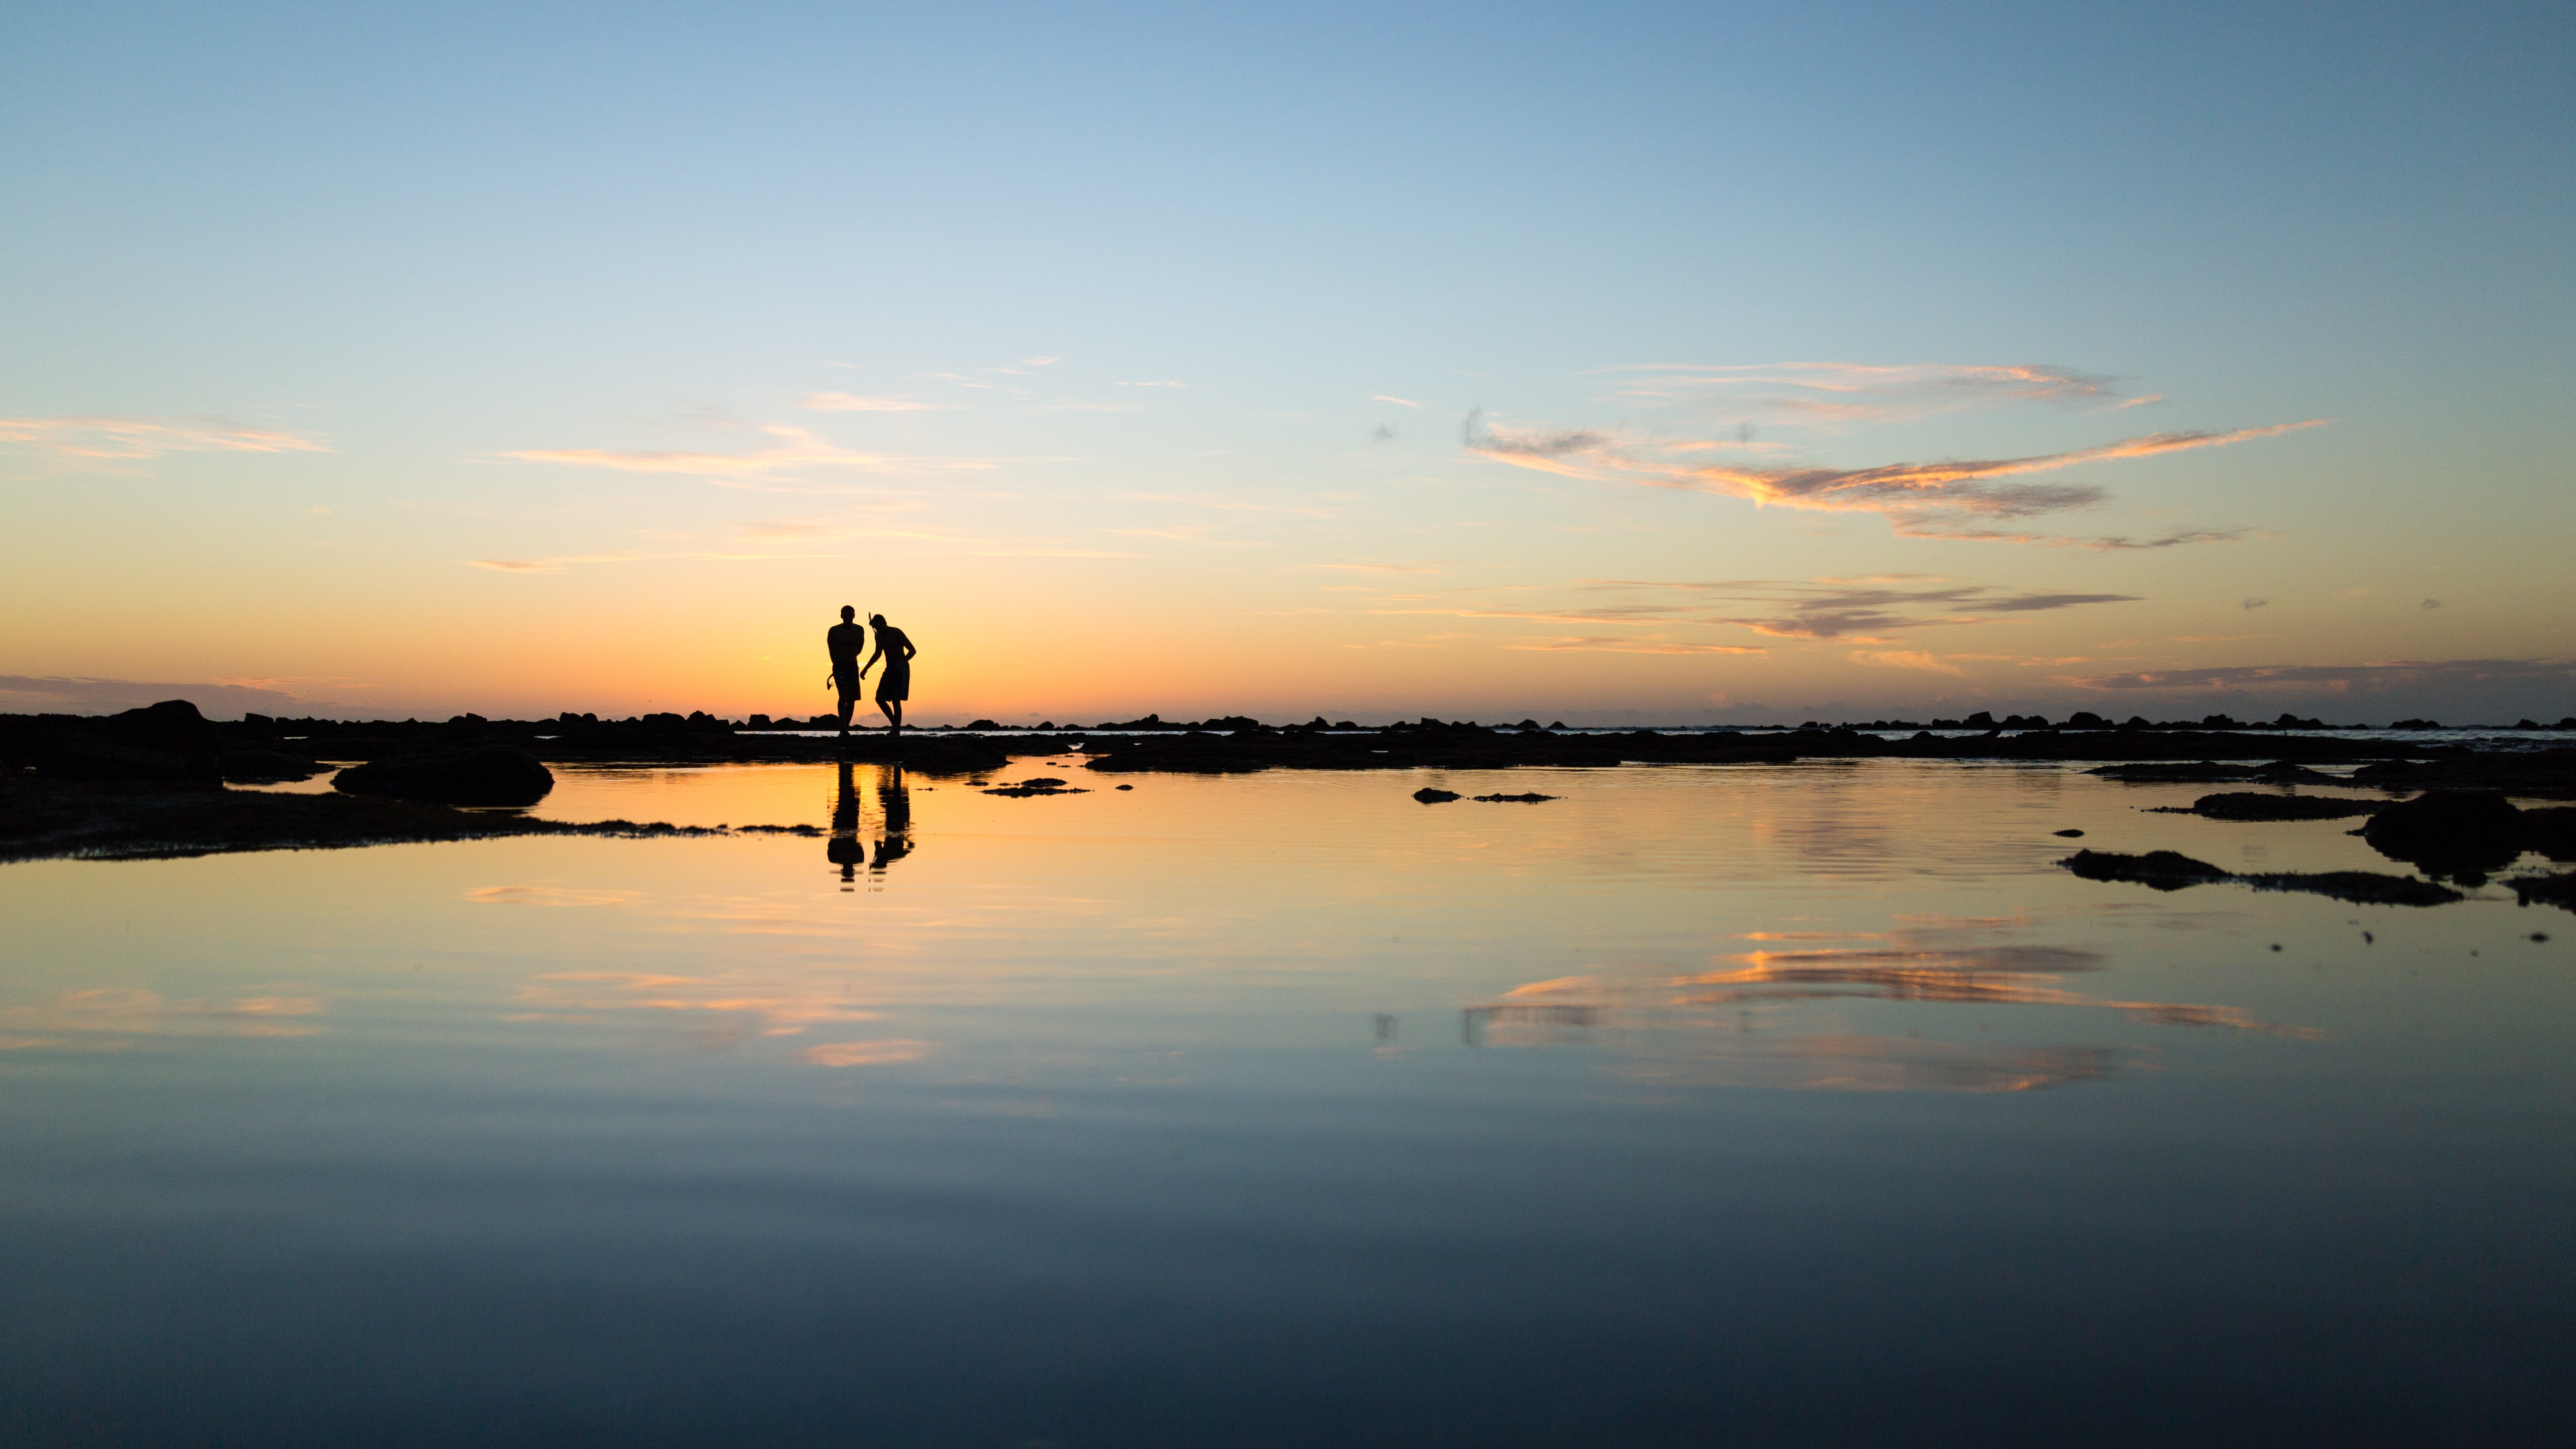 A silhouetted couple stand together on the horizon as they and the blue and yellow sky reflect into the still water foreground